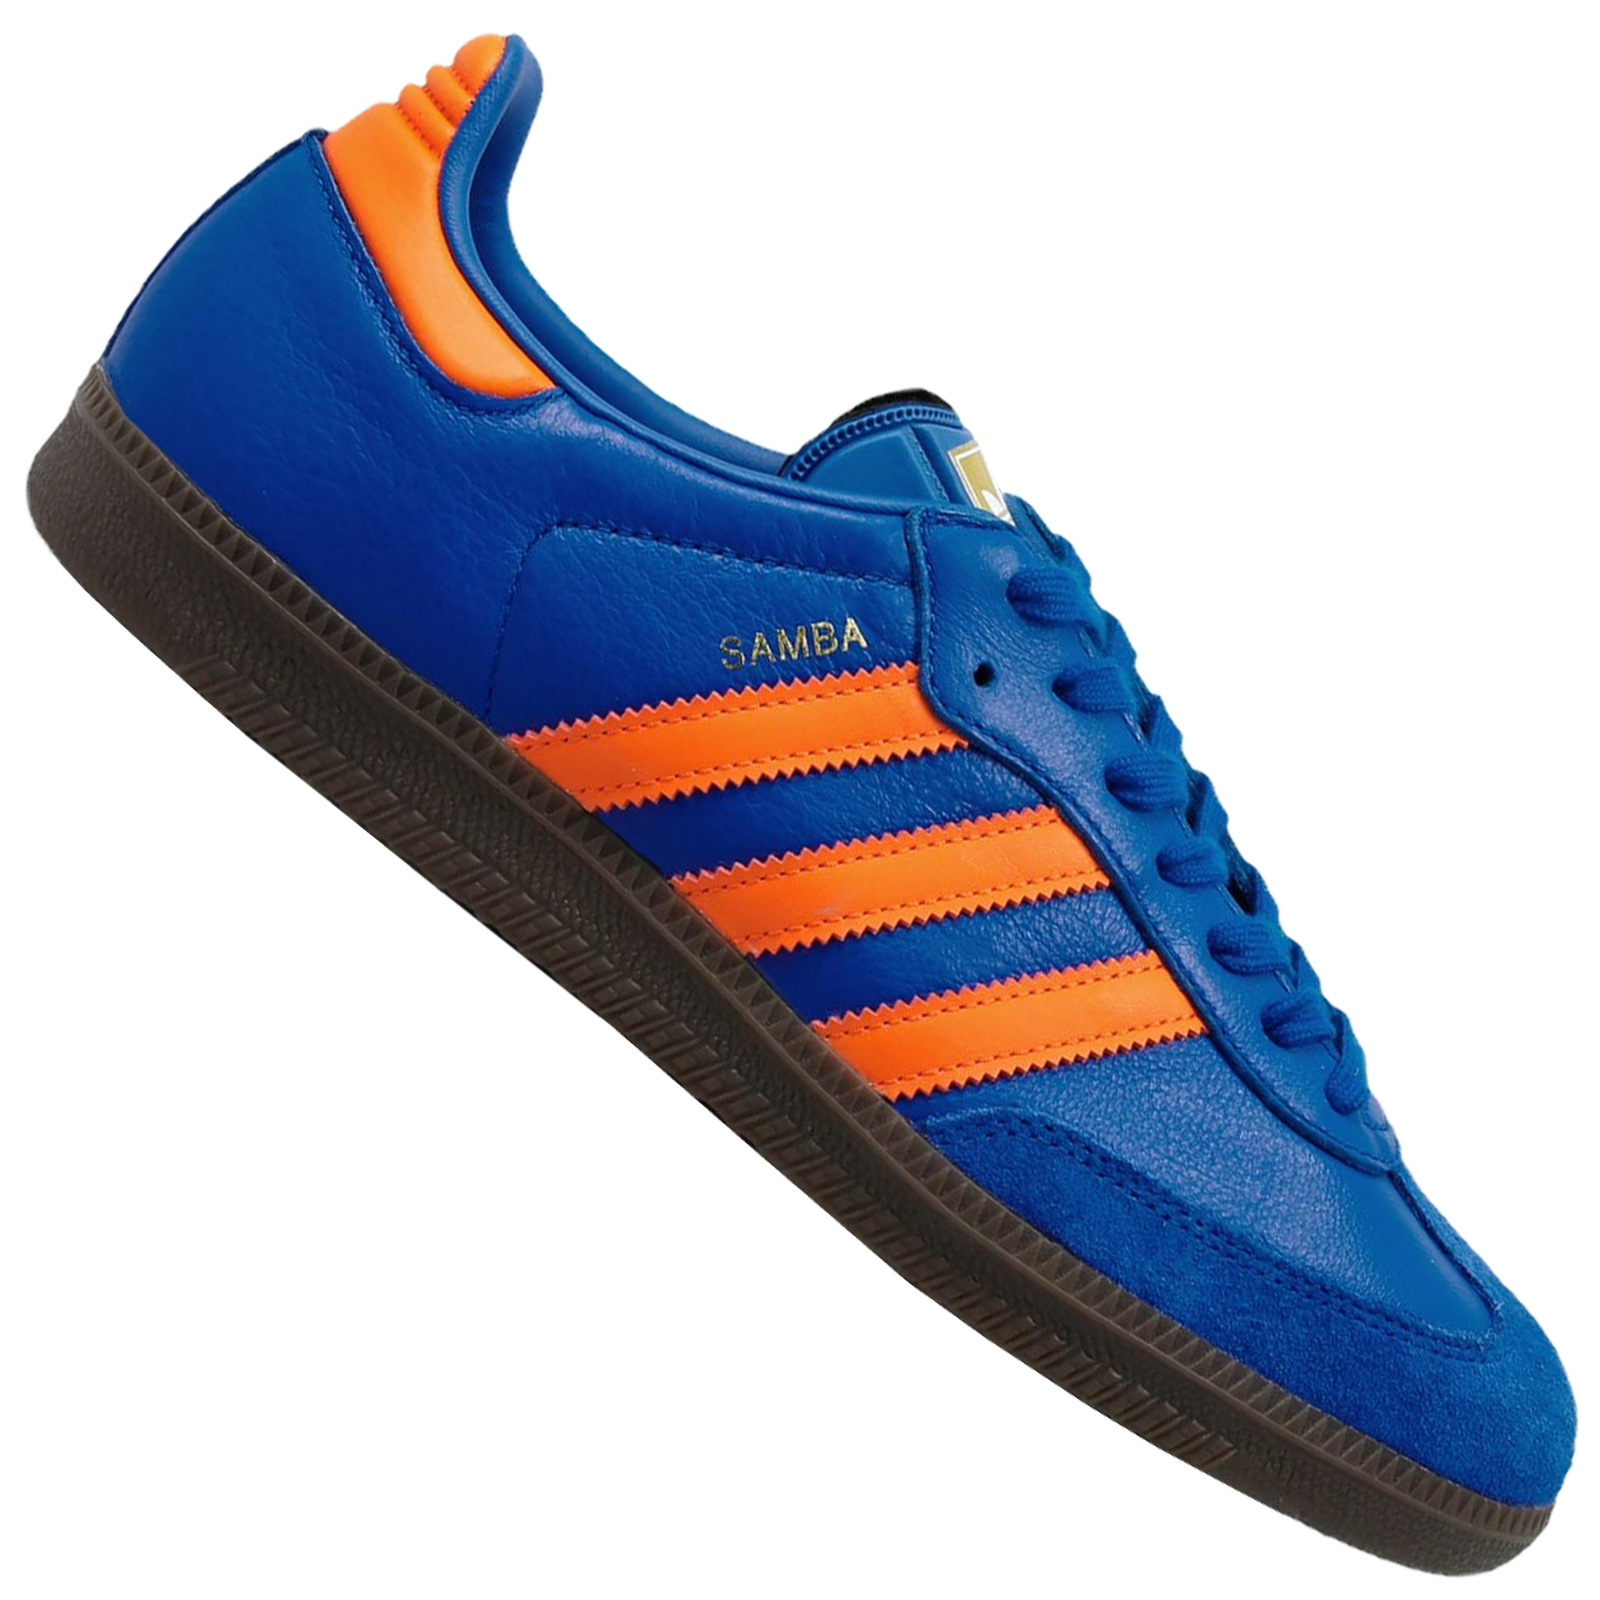 Details about Adidas Originals Samba Ladies Men's Sneakers CQ2150 Leather Sneakers Blue Orange